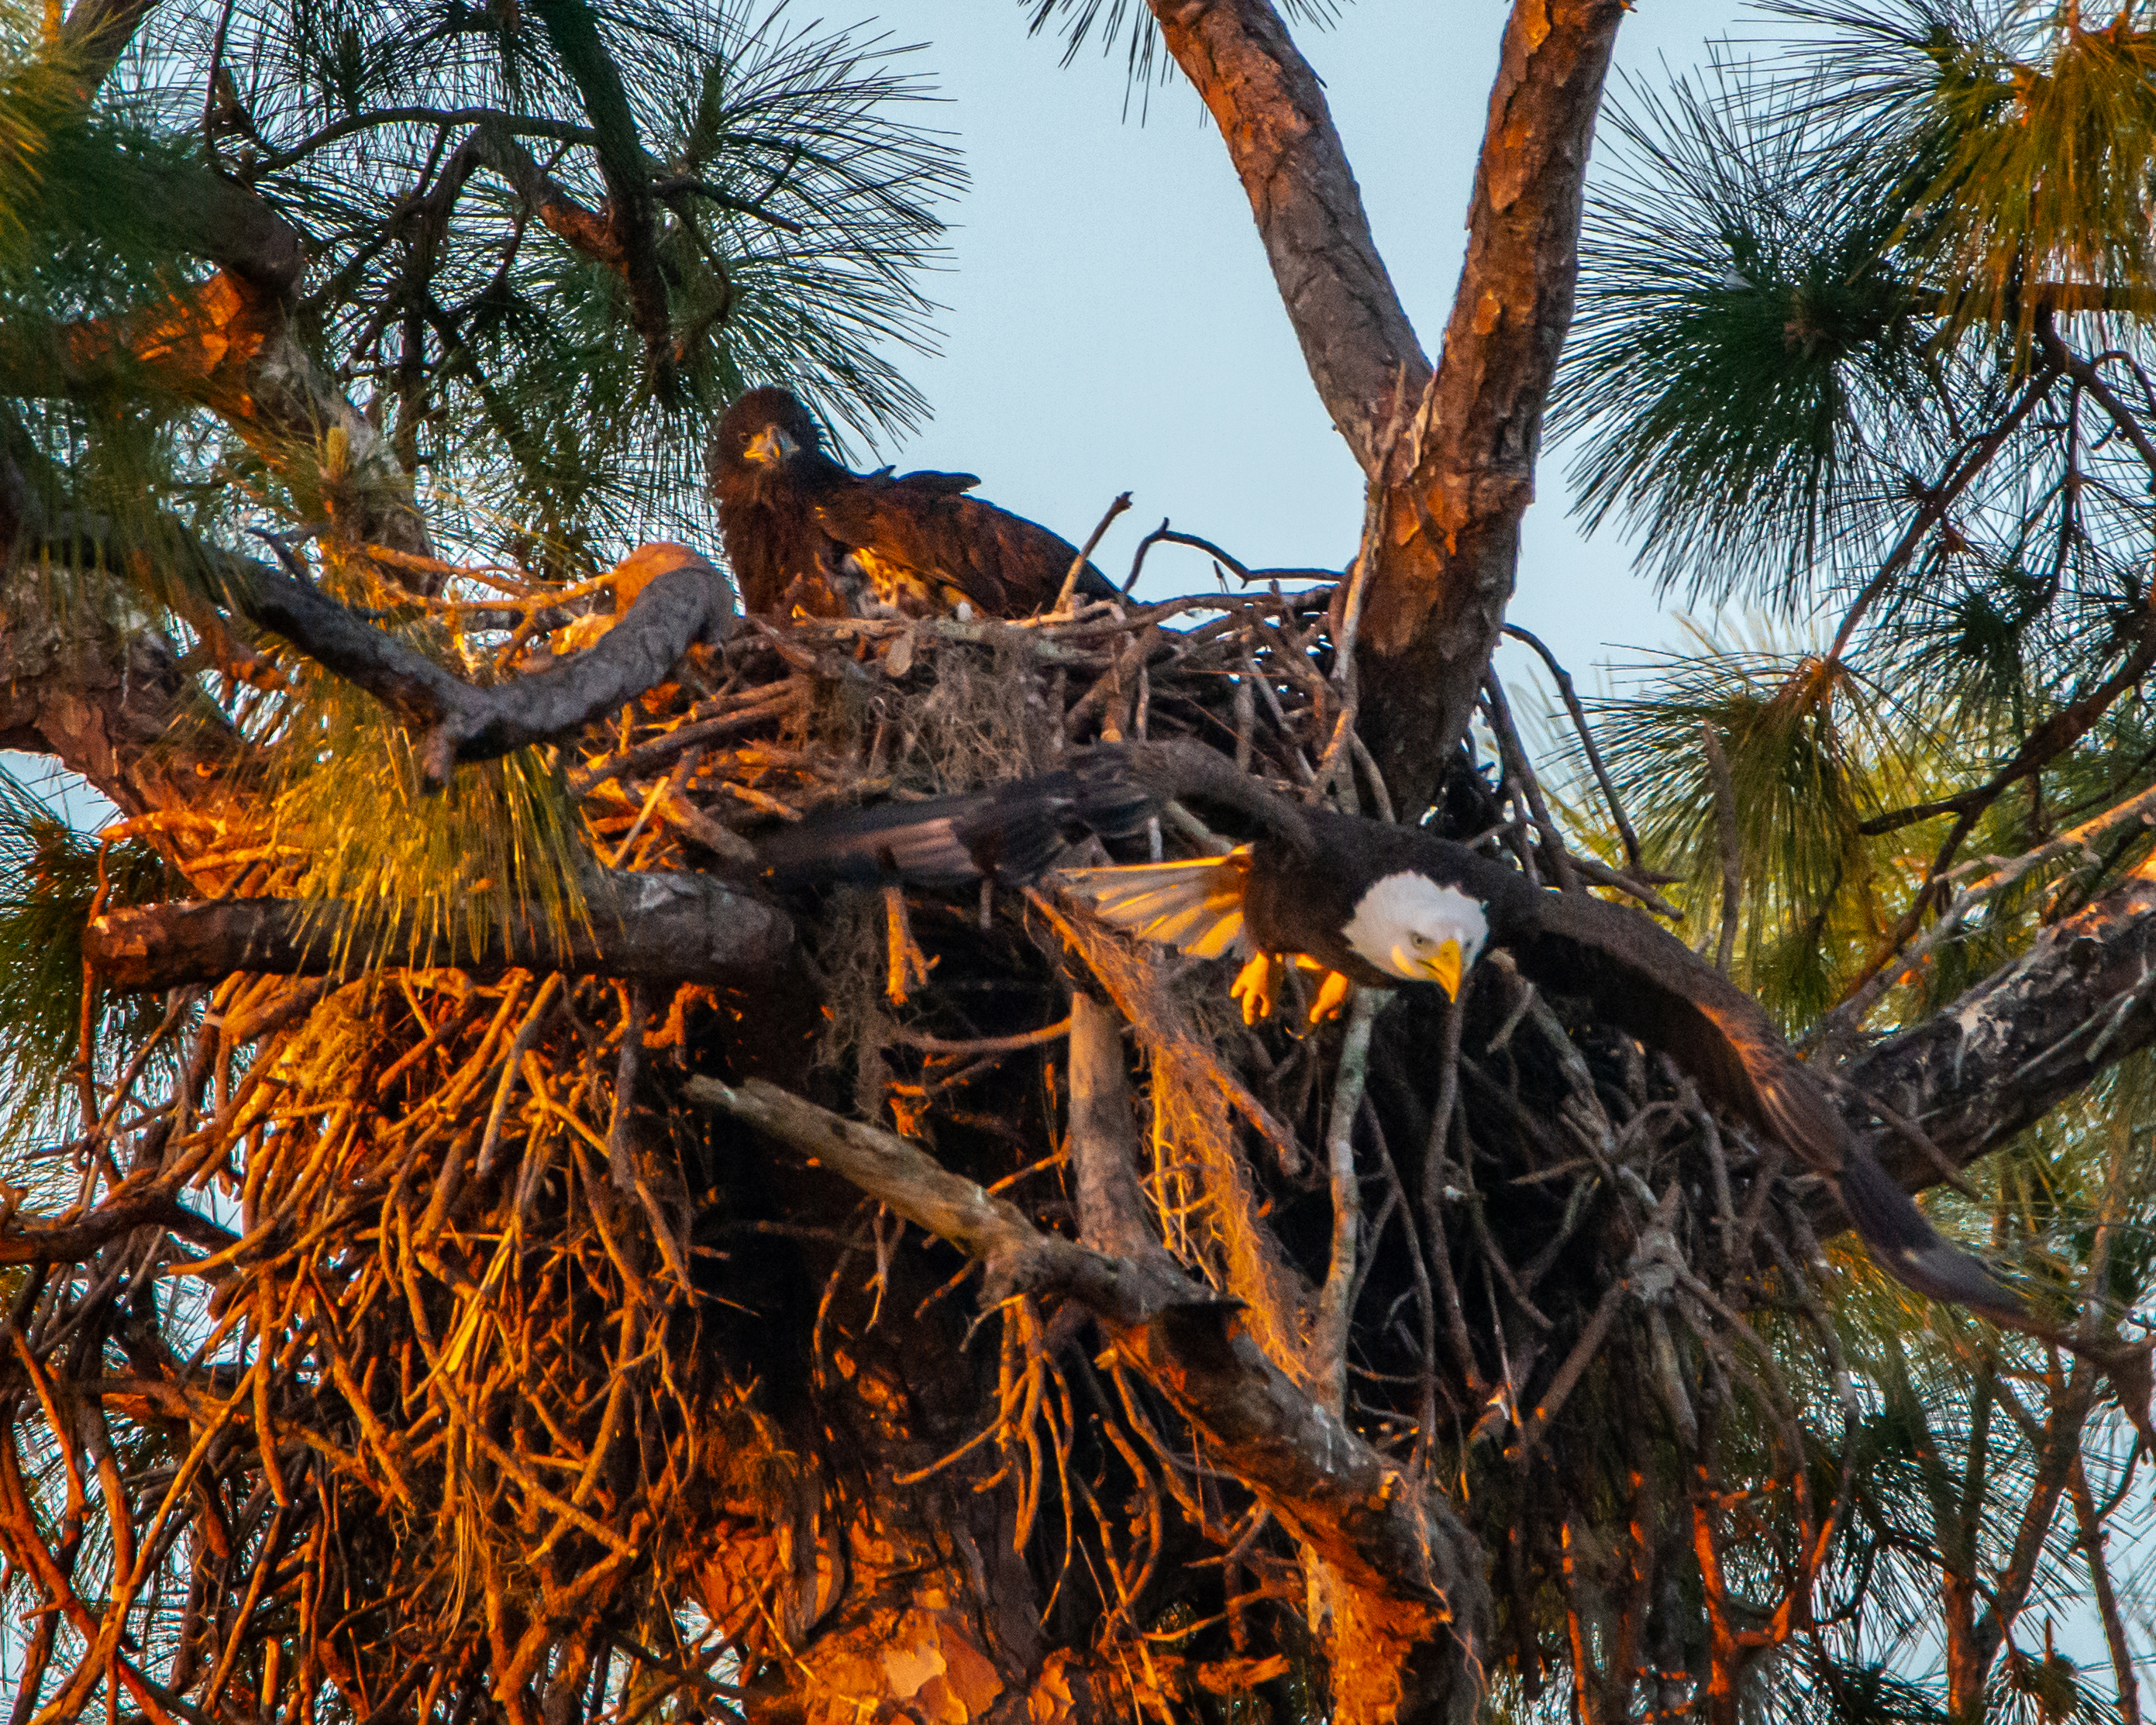 #eagle, #baldeagle, #stleo, Saintleo, #naplesflorida, #naples, fledgling, #youngster, #eaglet, #hunt, #fledge, #notyet, #waitingforfood, #mother, #parent